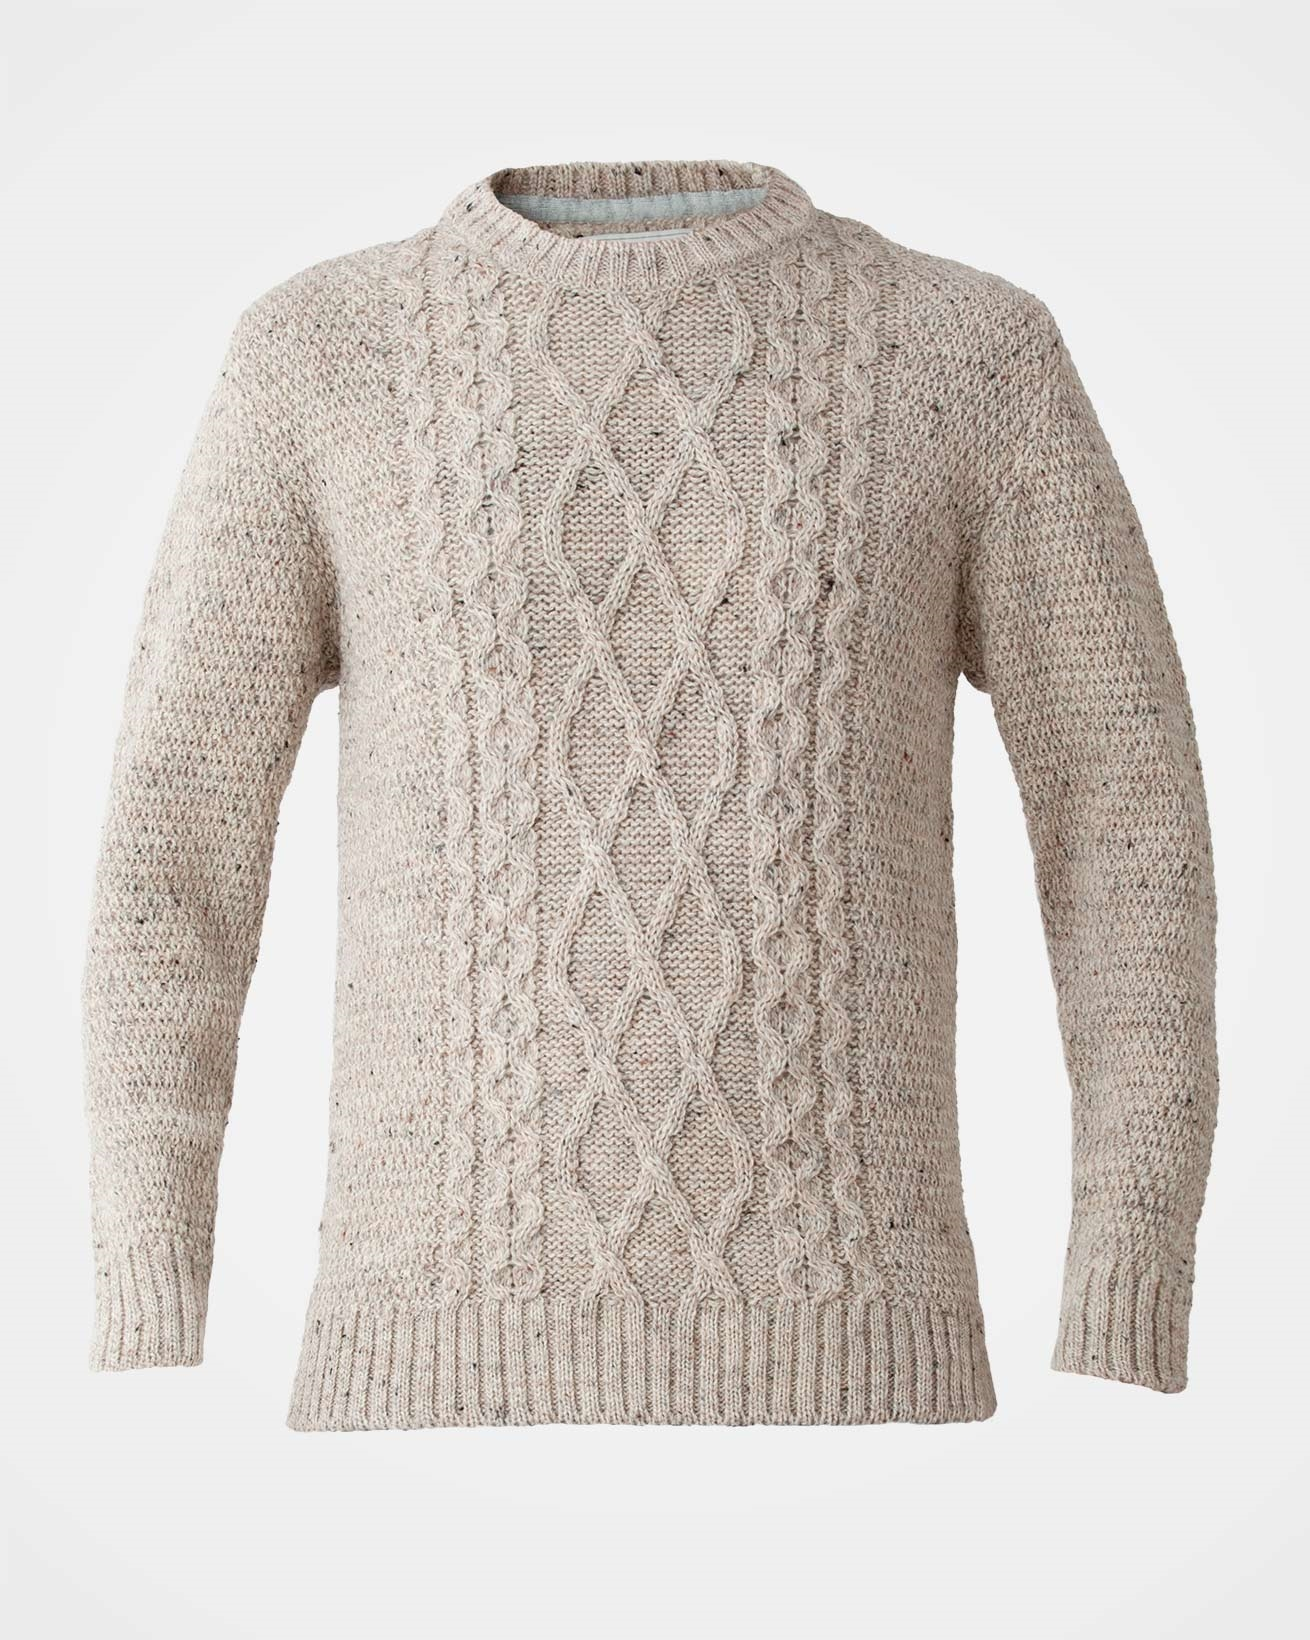 7618_mens-cable-crew-neck-jumper_oatmeal-fleck_front.jpg